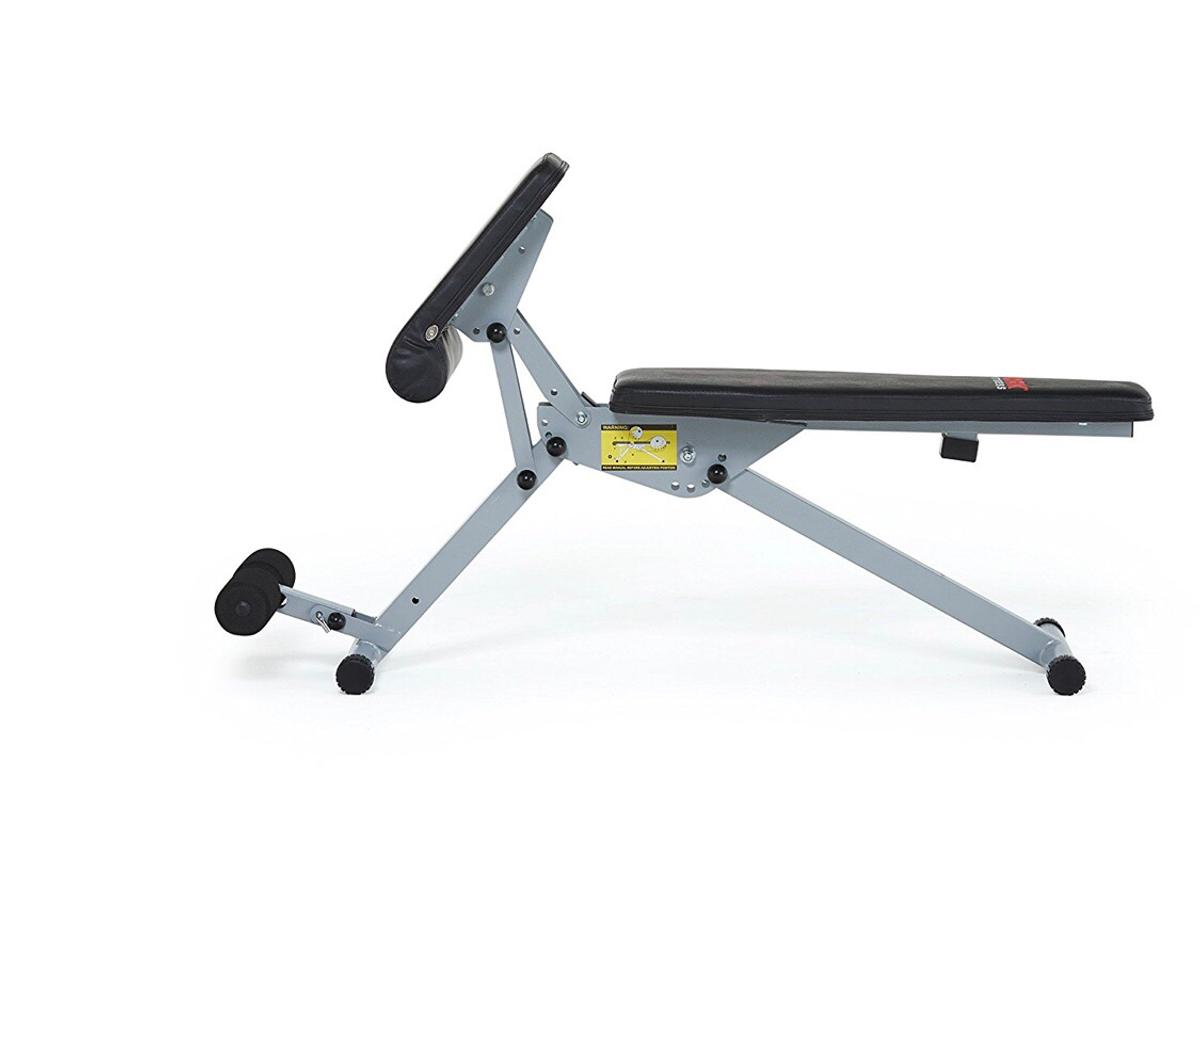 York Fitness 13 In 1 Utility Bench In W12 London Borough Of